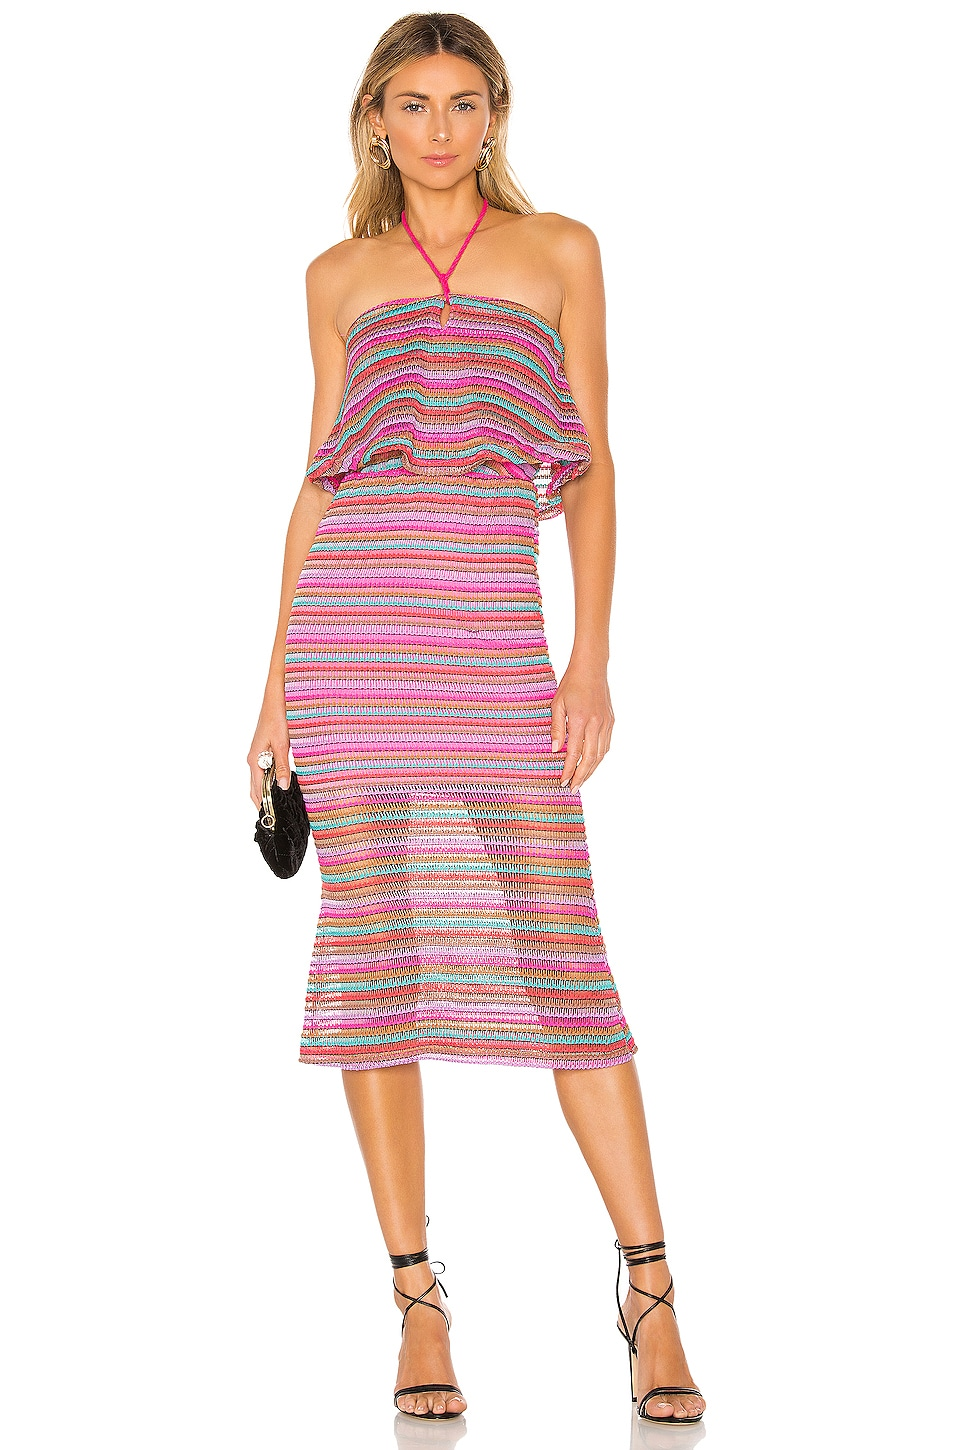 House of Harlow 1960 X REVOLVE Dries Dress in Multi